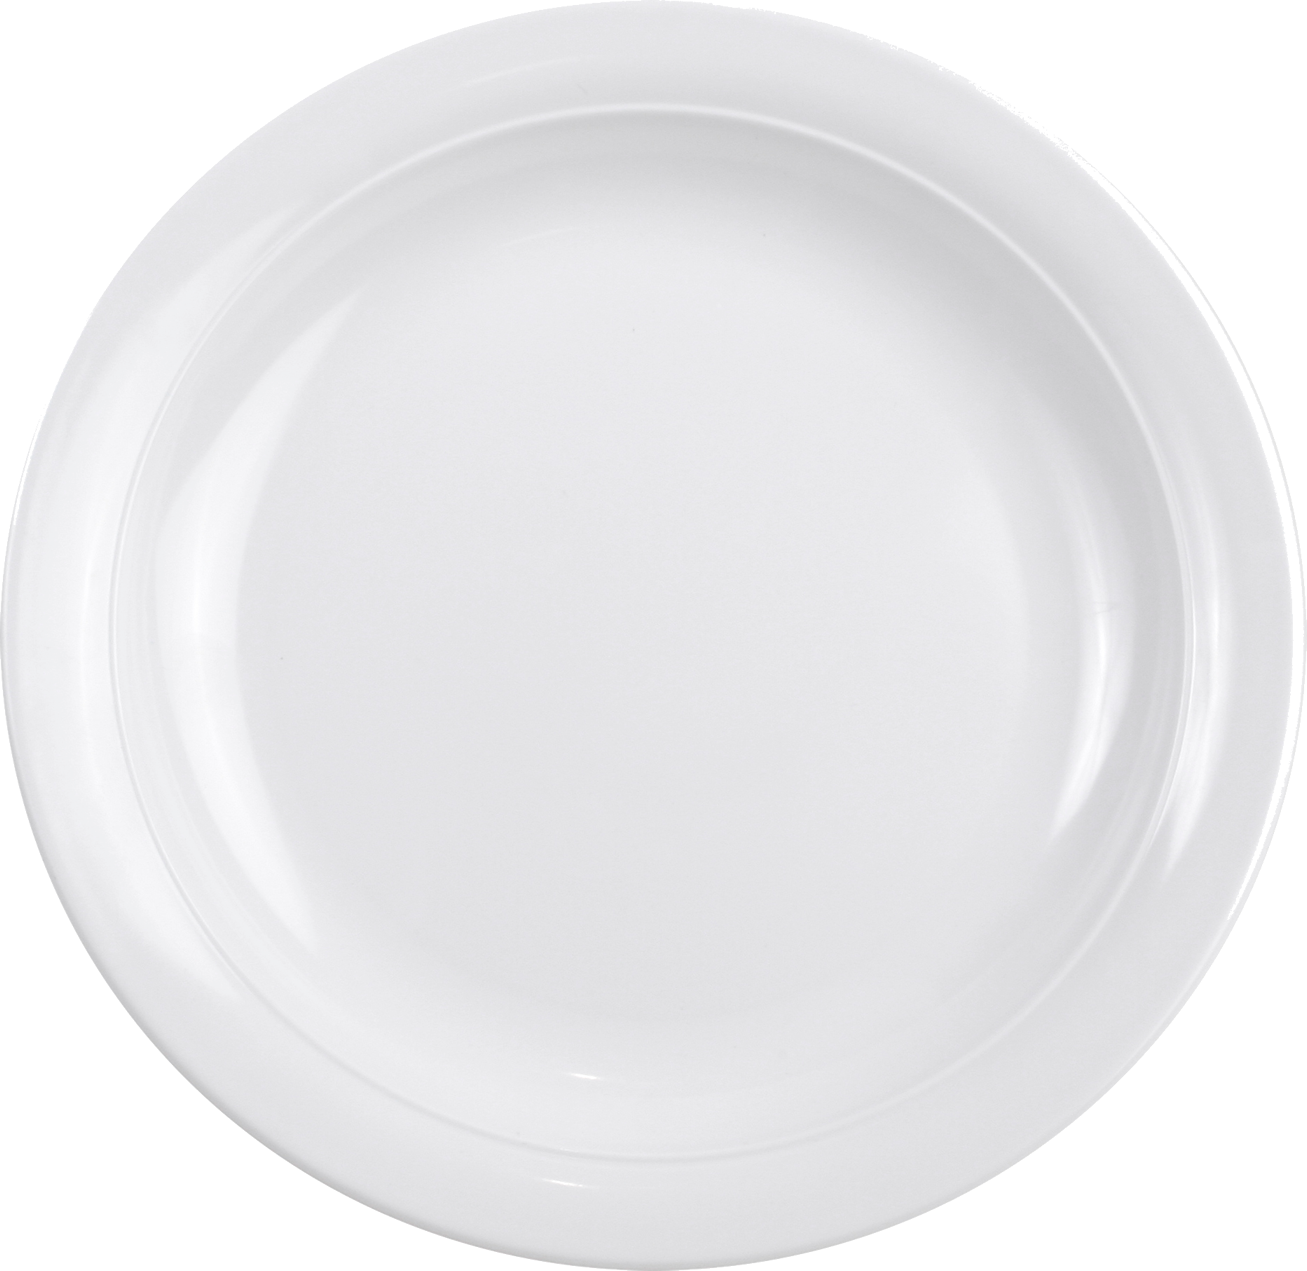 Plate png. Plates photo images free